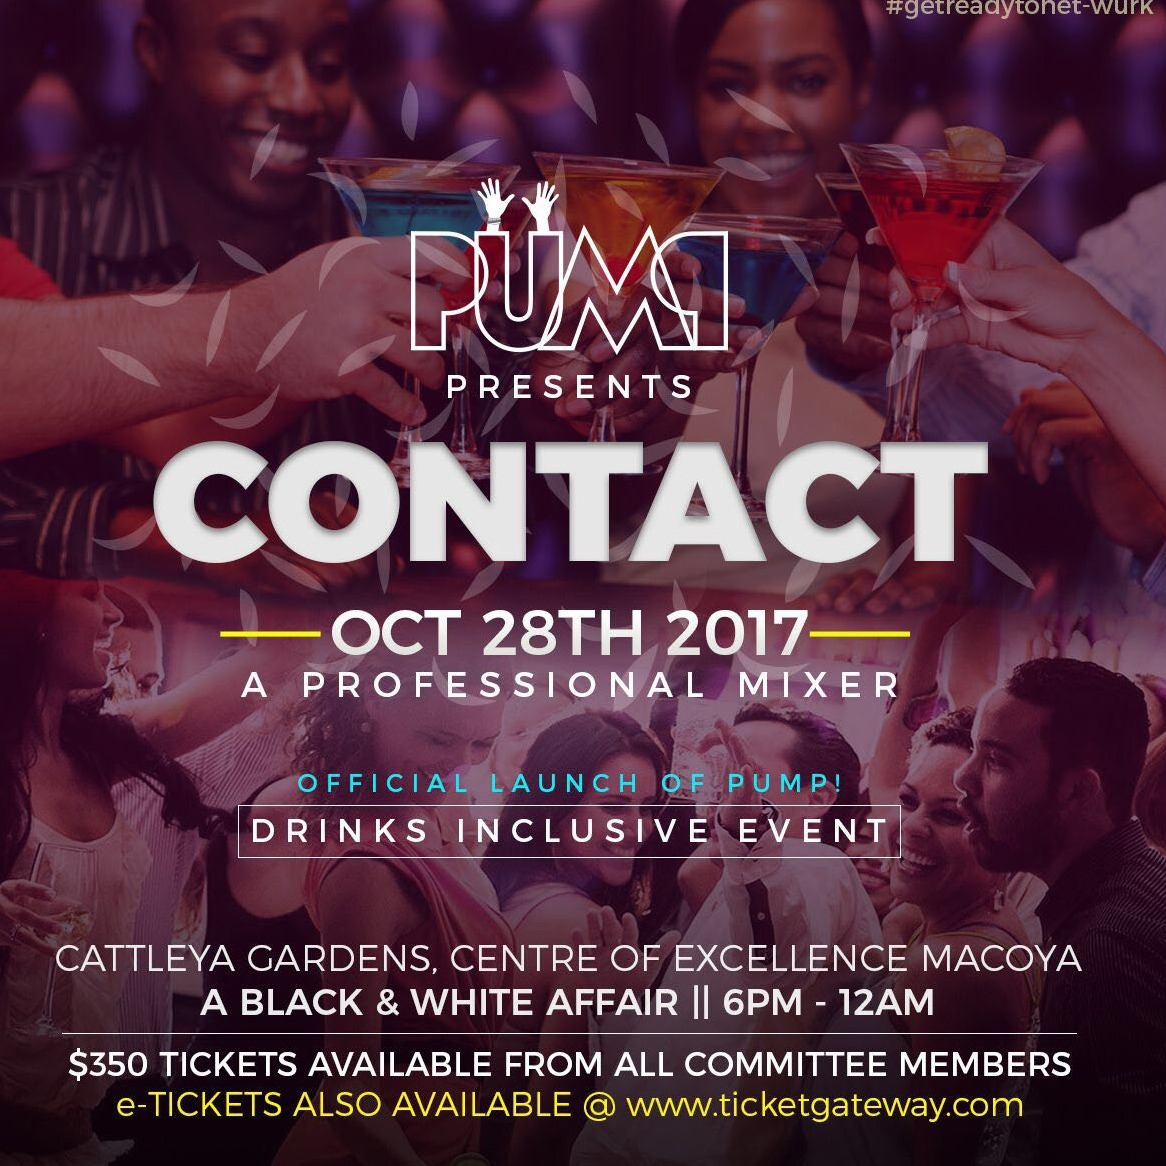 CONTACT - A PROFESSIONAL MIXER PARTY